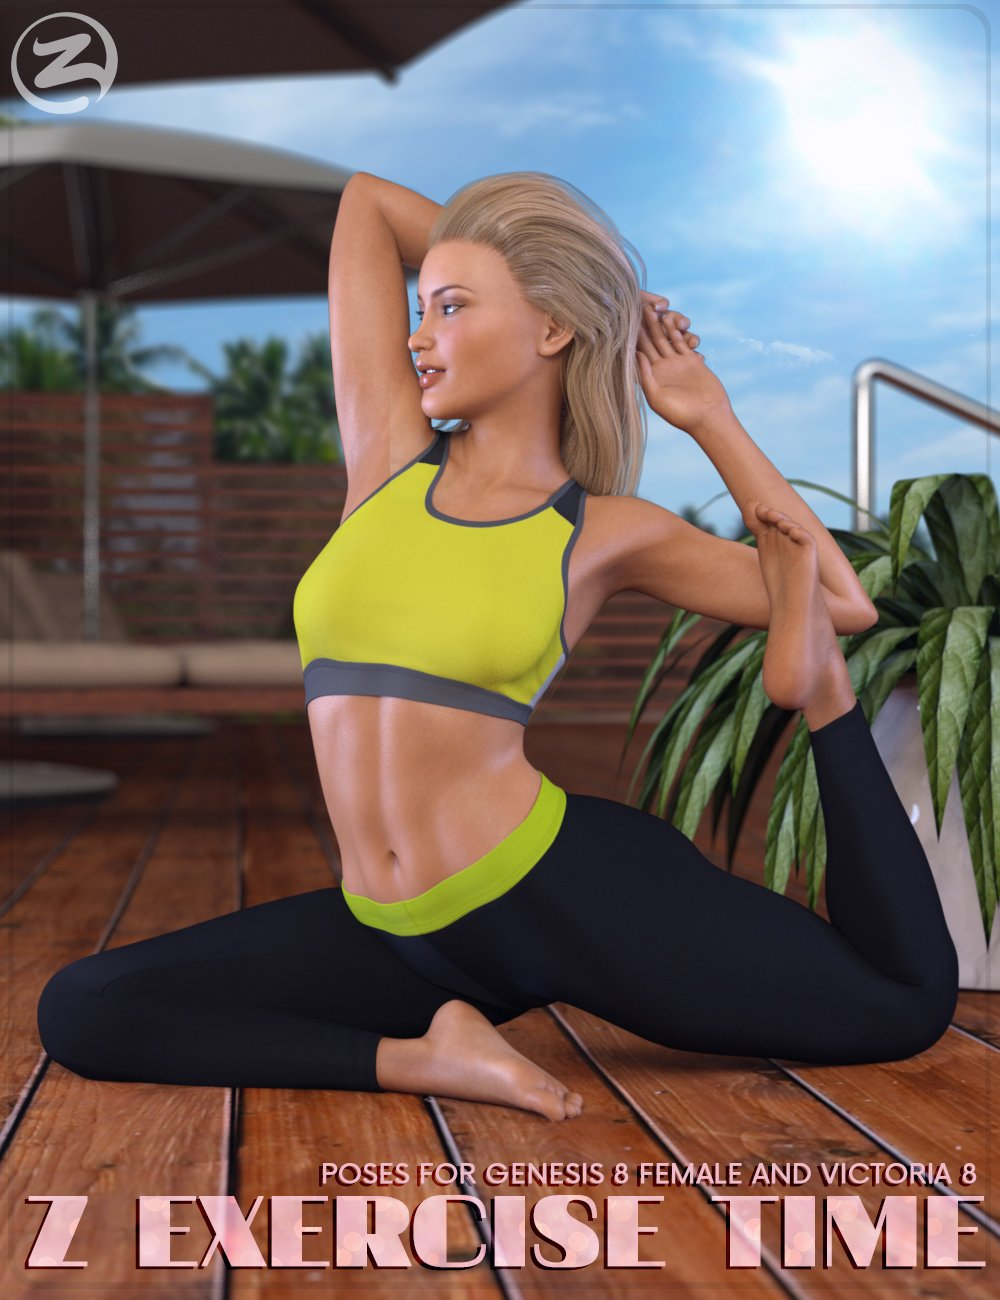 Z Exercise Time - Poses for Genesis 8 Female and Victoria 8 by: Zeddicuss, 3D Models by Daz 3D